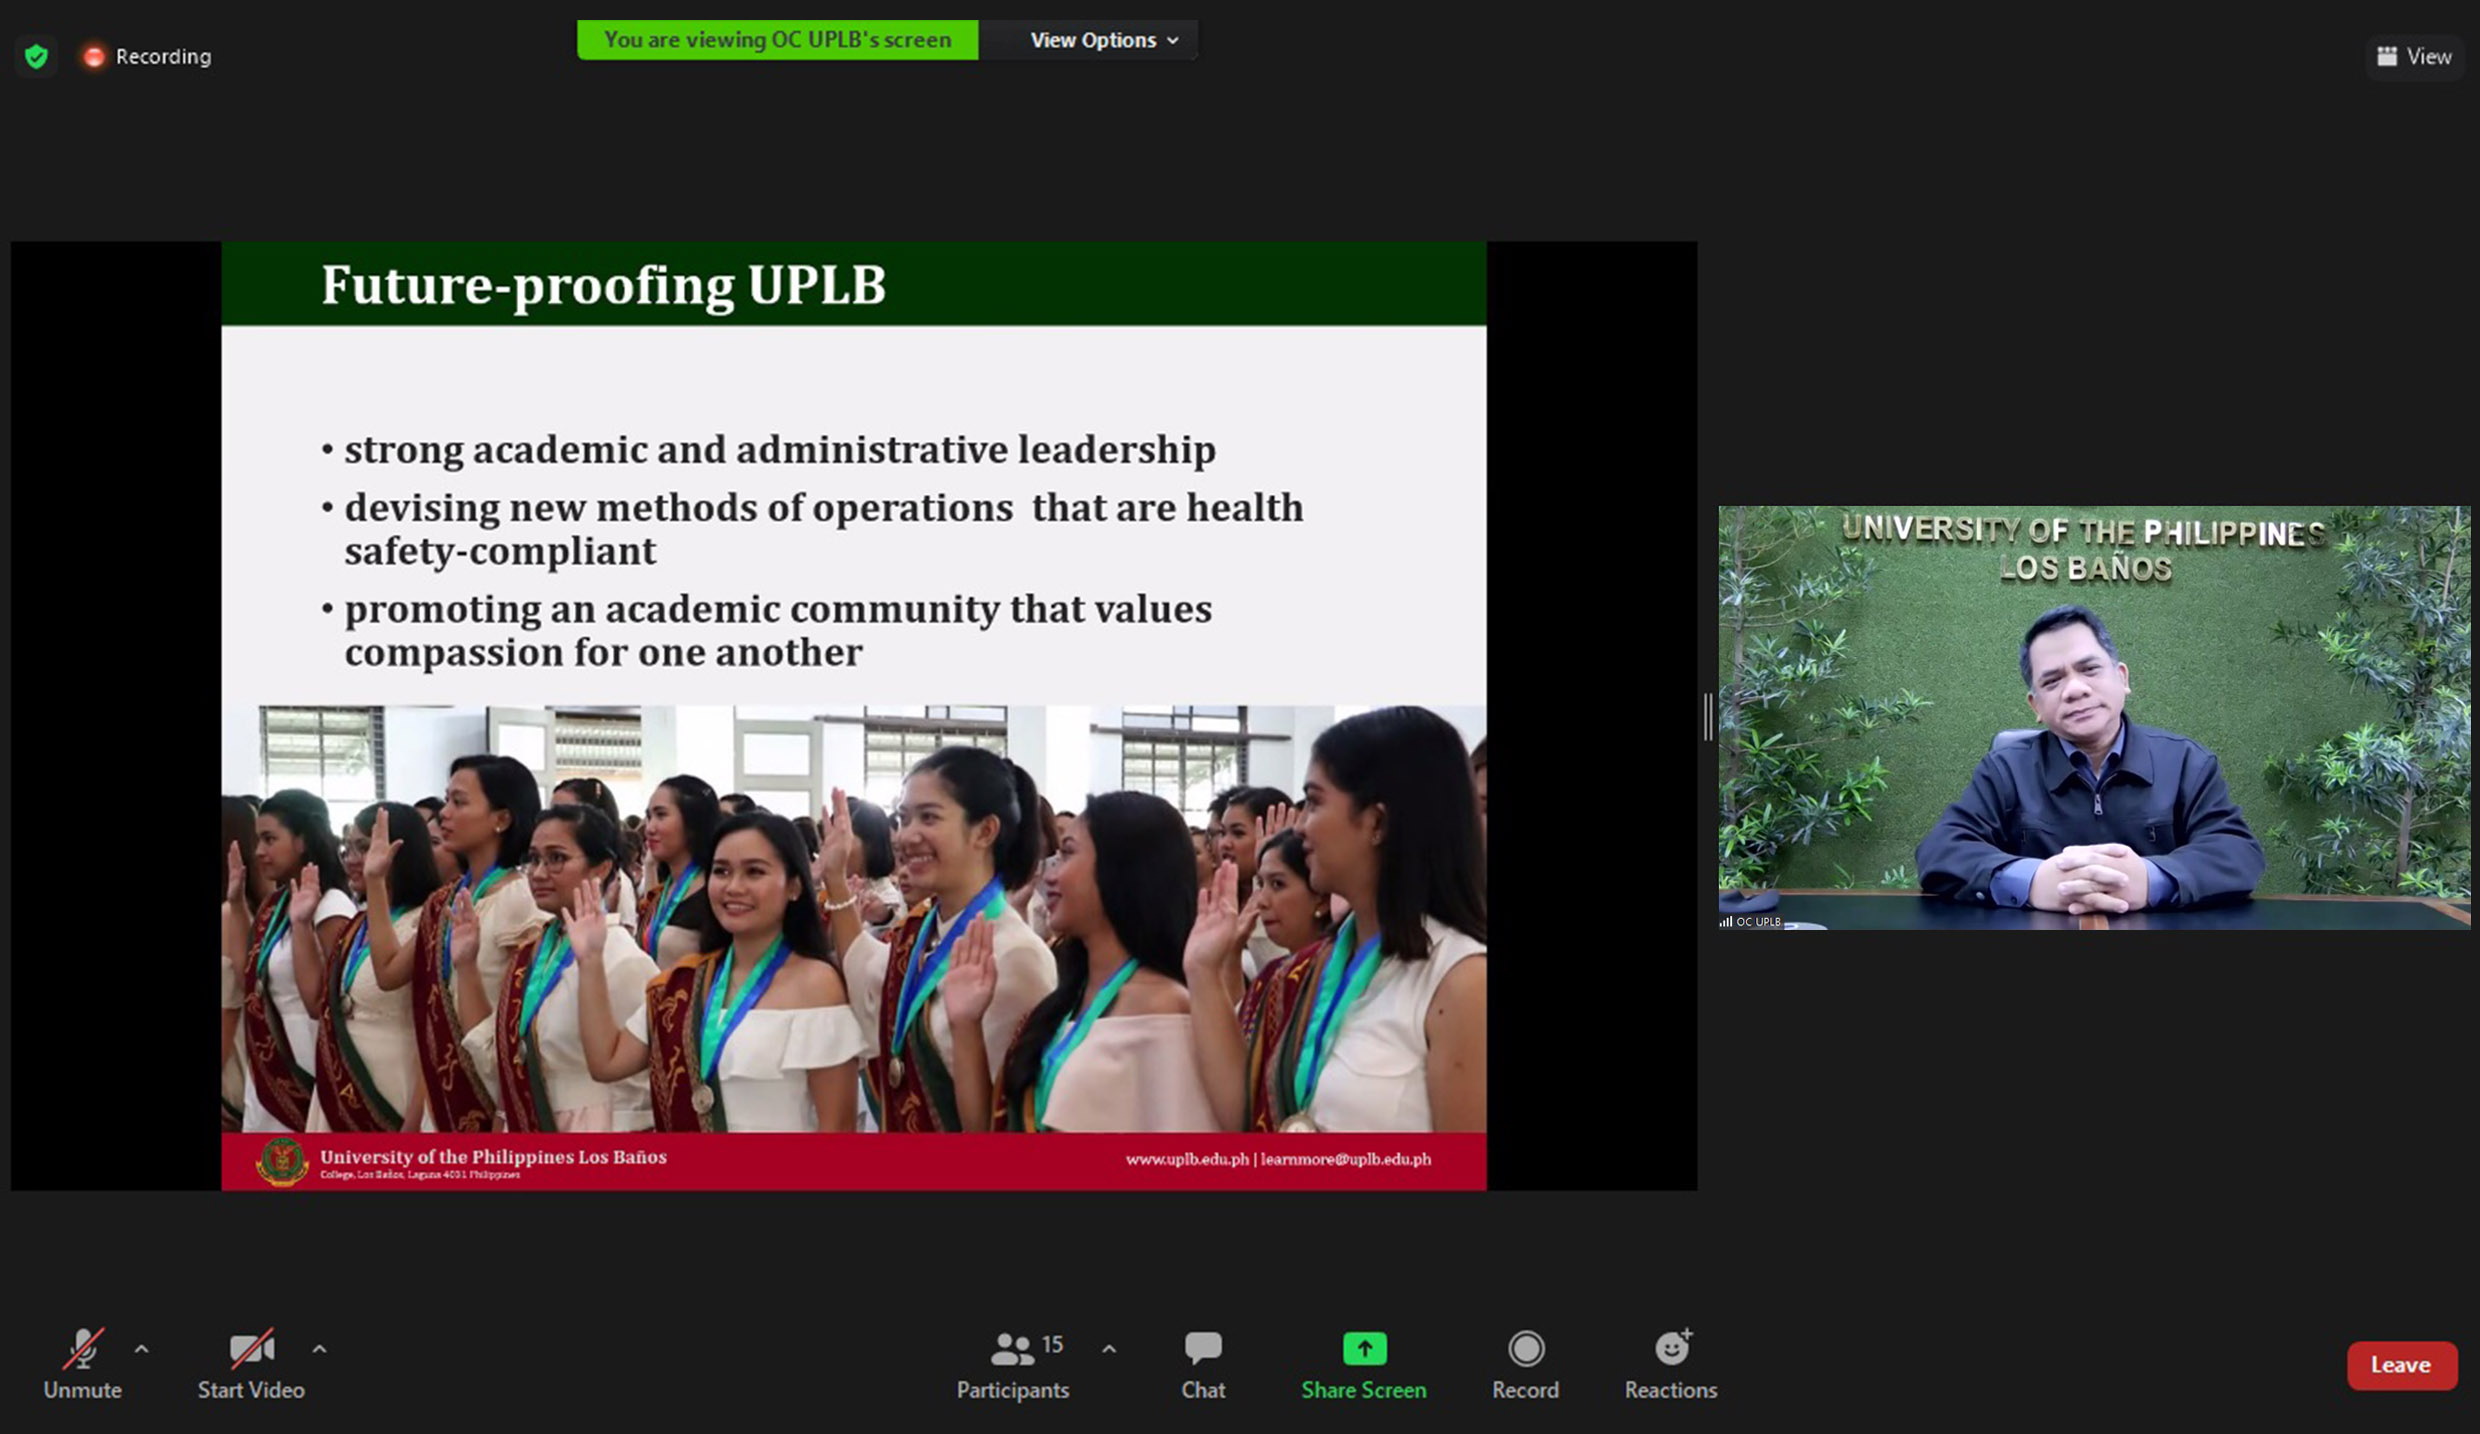 CJCJ speaks on future-proofing UPLB to association of managers